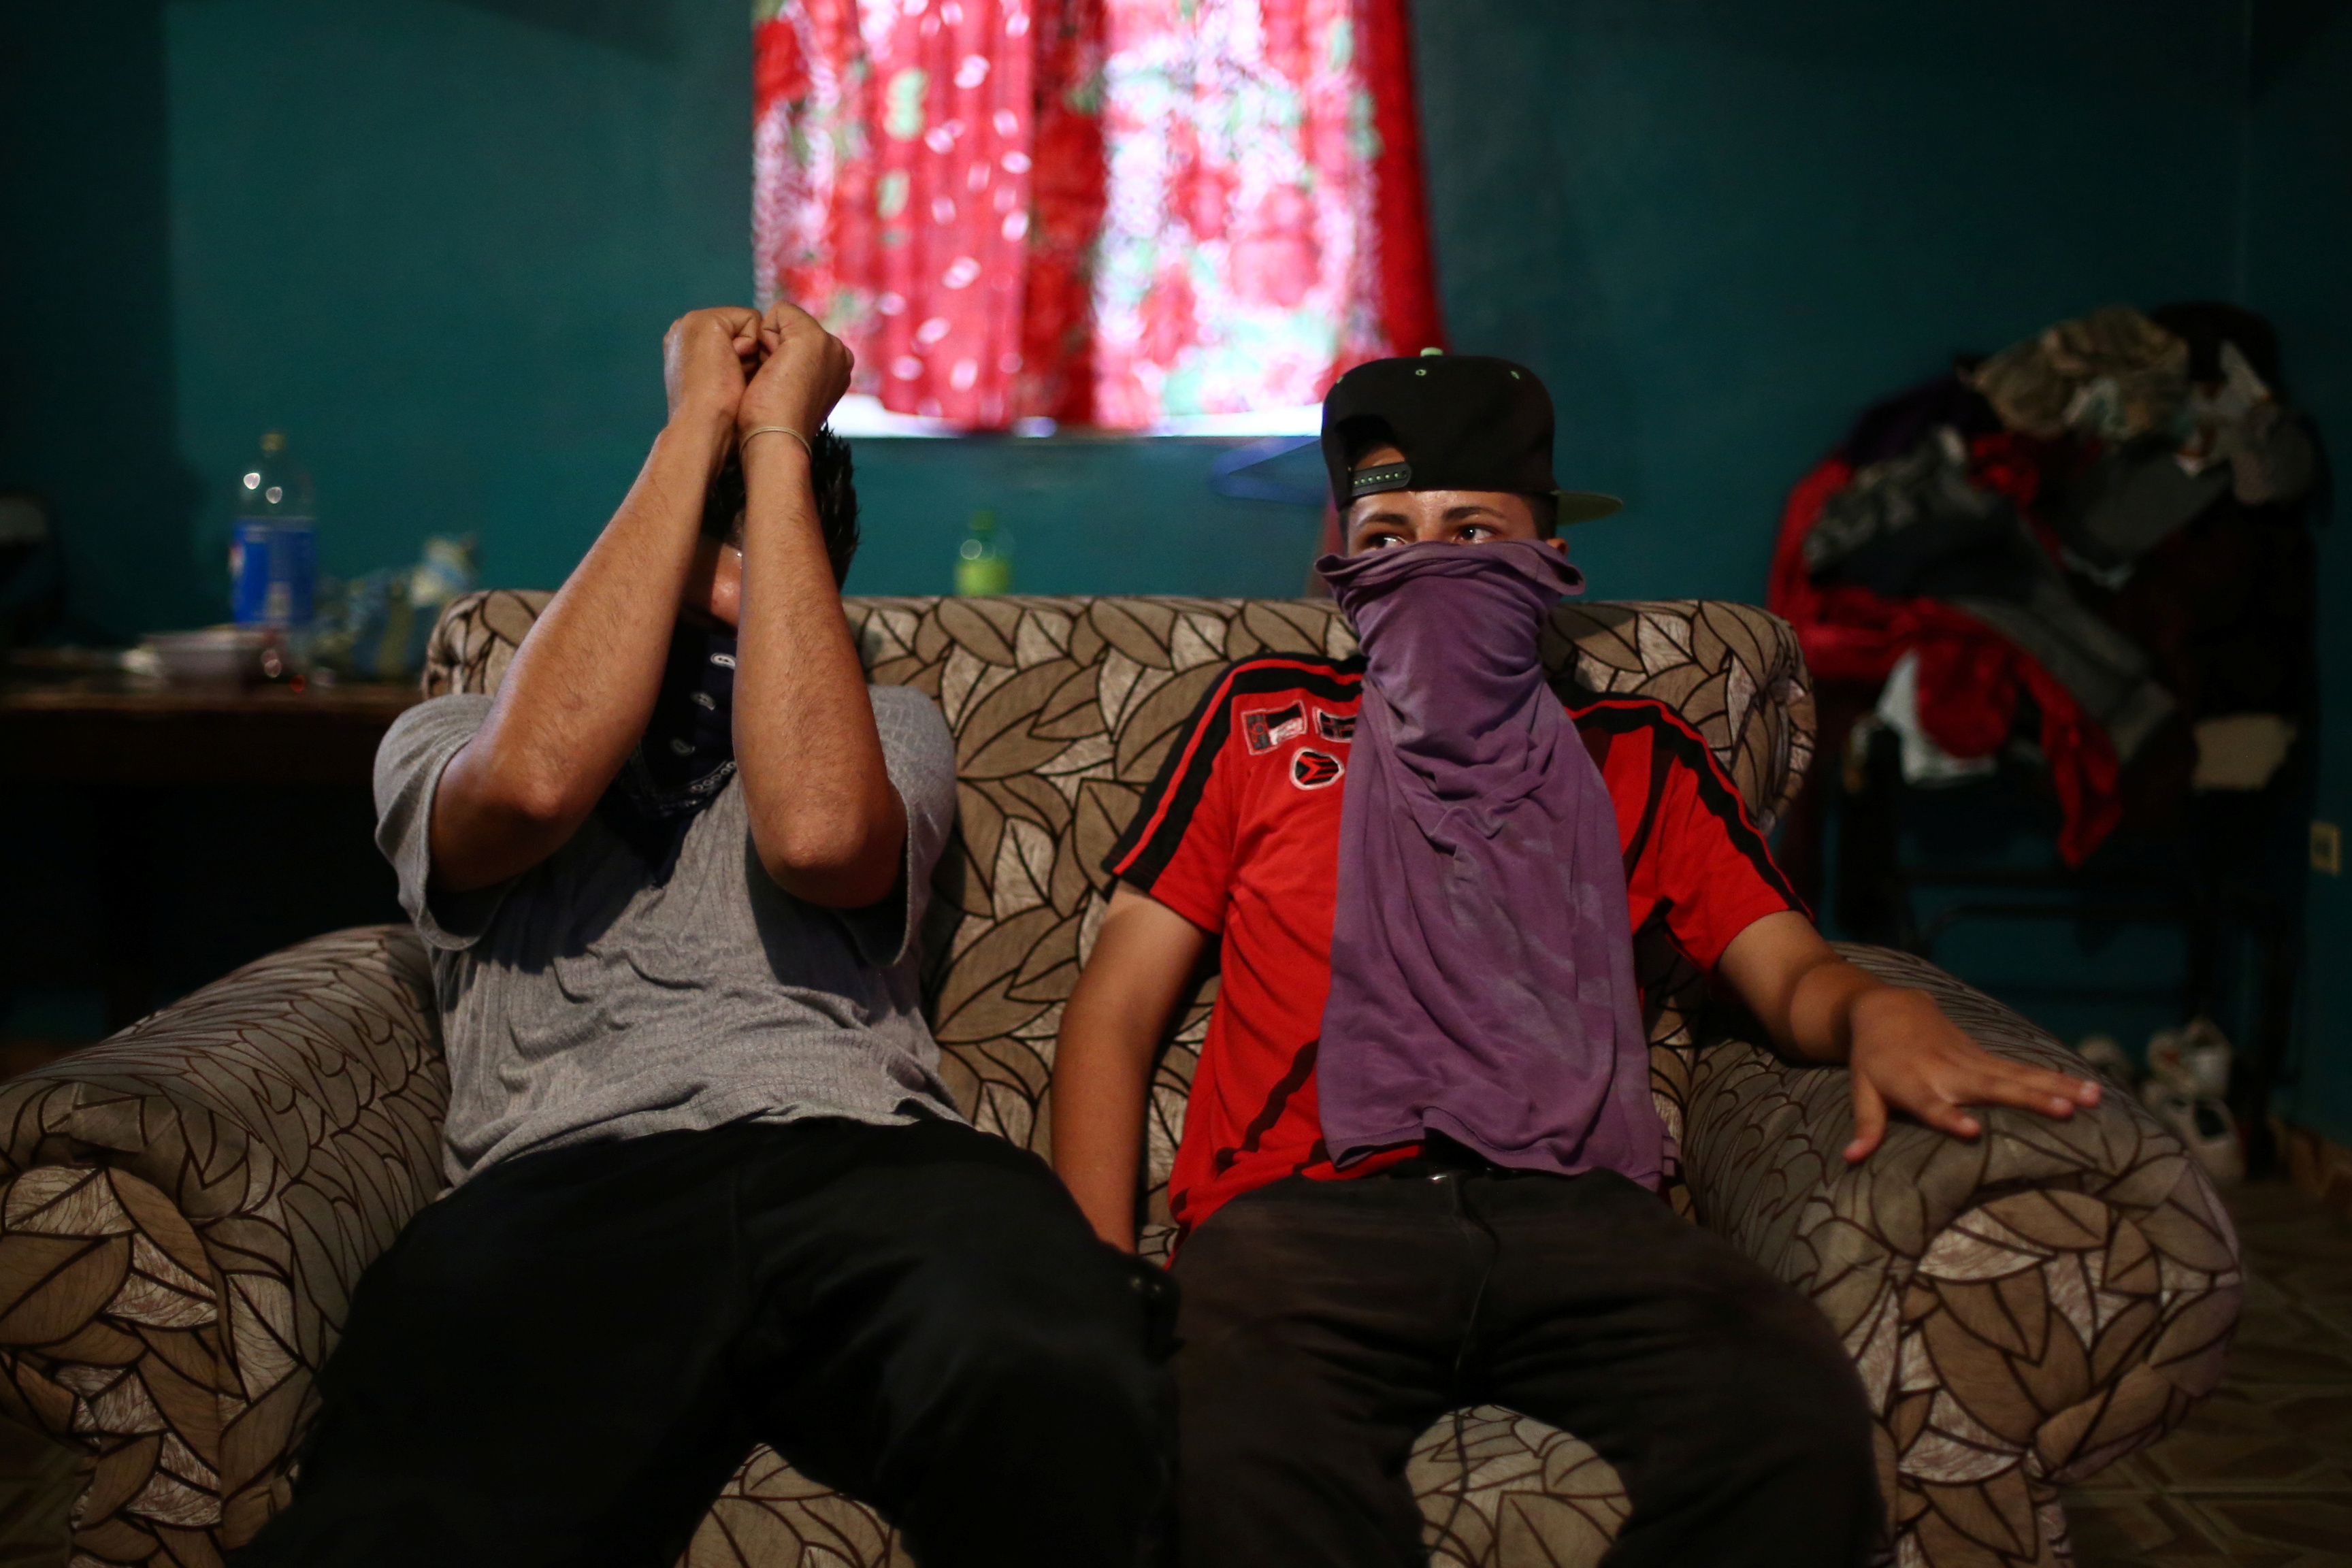 """El Fresa"" (L), a Barrio-18 gang member, sits on a sofa next to another Barrio-18 gang member in San Pedro Sula, Honduras, May 27, 2018. REUTERS/Edgard Garrido"